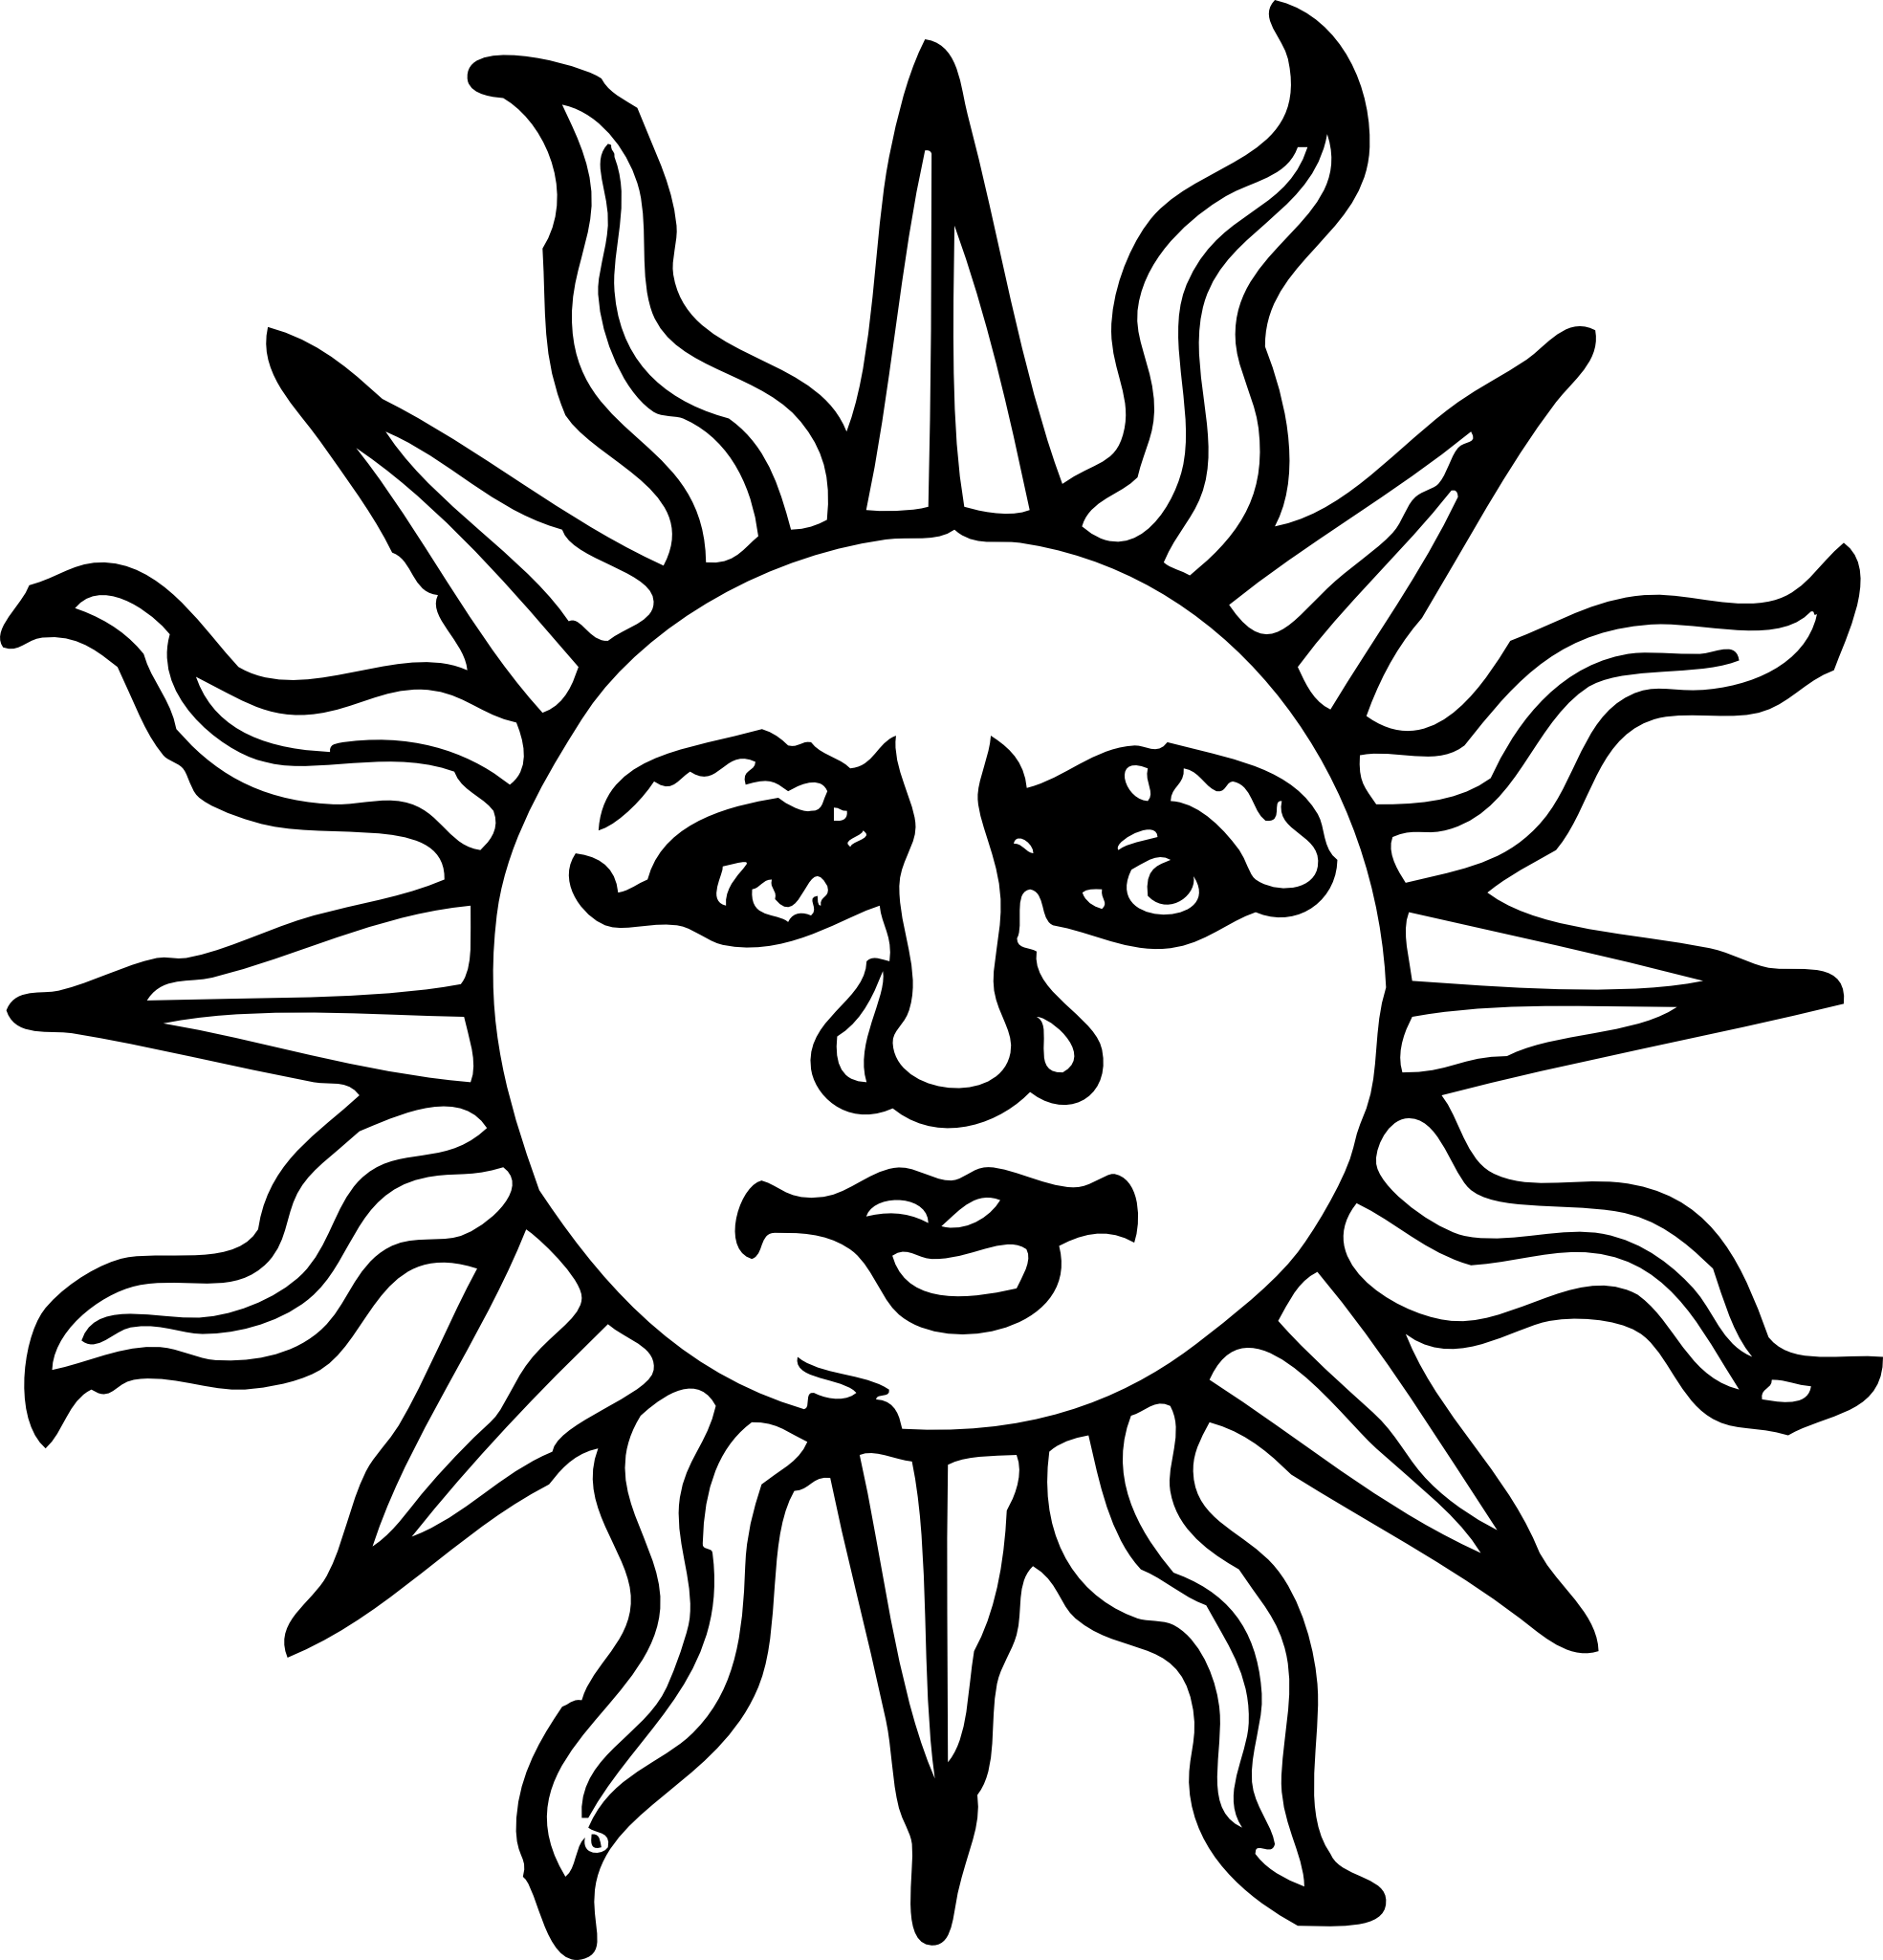 Free Sun And Moon Clipart, Download Free Clip Art, Free Clip.